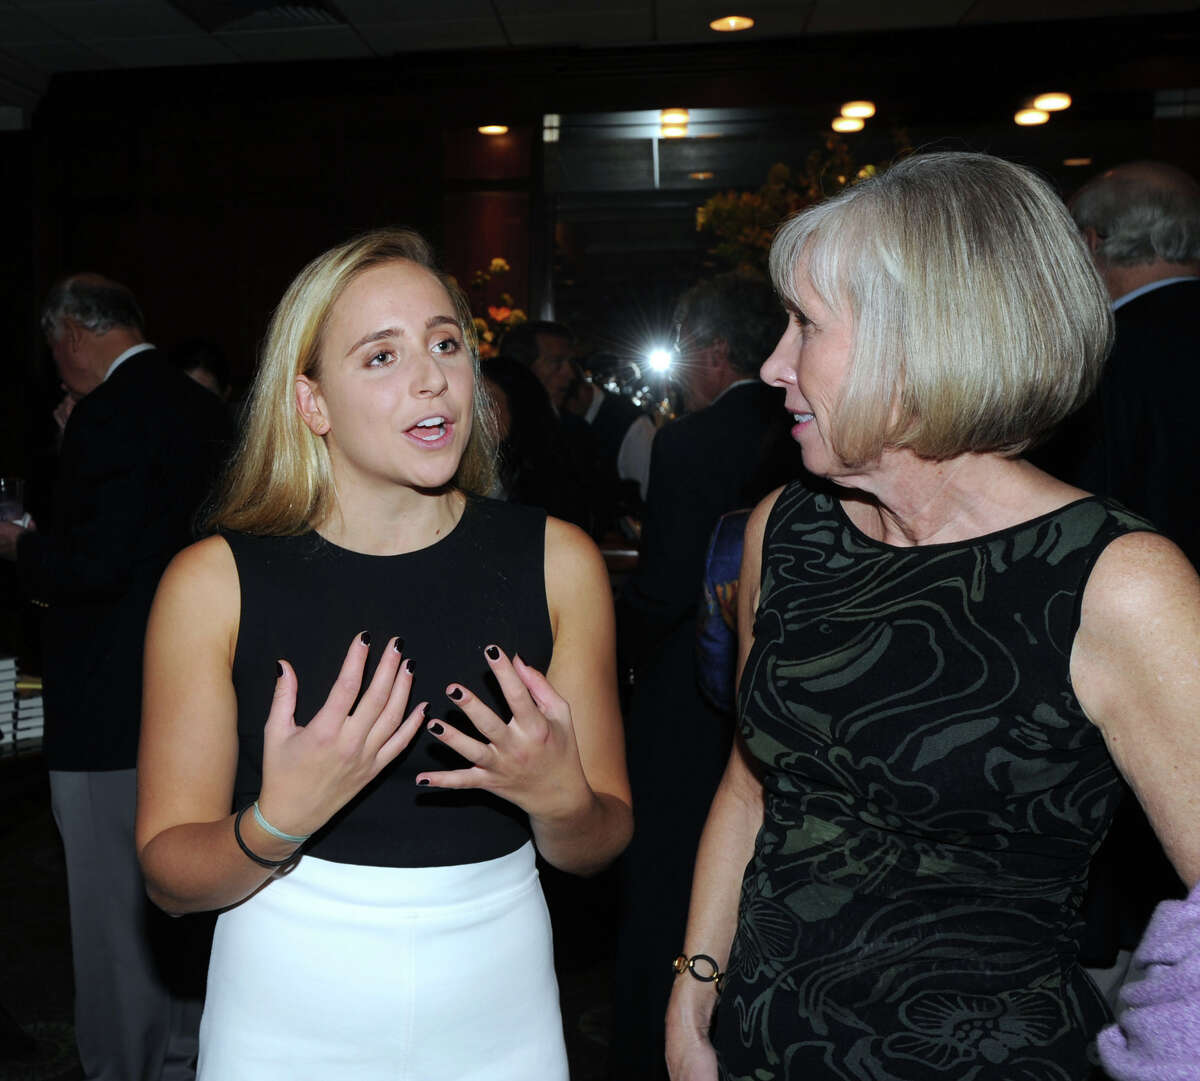 """At left, Greenwich High School senior Olivia Hallisey, 18, speaks with Debra Mecky, the executive director of the Greenwich Historical Society during the society's """"An Evening with Lesley Stahl"""" at the Greenwich Country Club, Greenwich, Conn., Wednesday night, Oct. 5, 2016. Hallisey was honored with a Greenwich Makes History award during the event for being a 2015 Google Science Fair Grand Prize Winner. Stahl, an awarding winning broadcast journalist was on hand to promote her book """"Becoming Grandma: The Joy and Science of the New Grandparenting."""" Stahl also spoke during the event."""